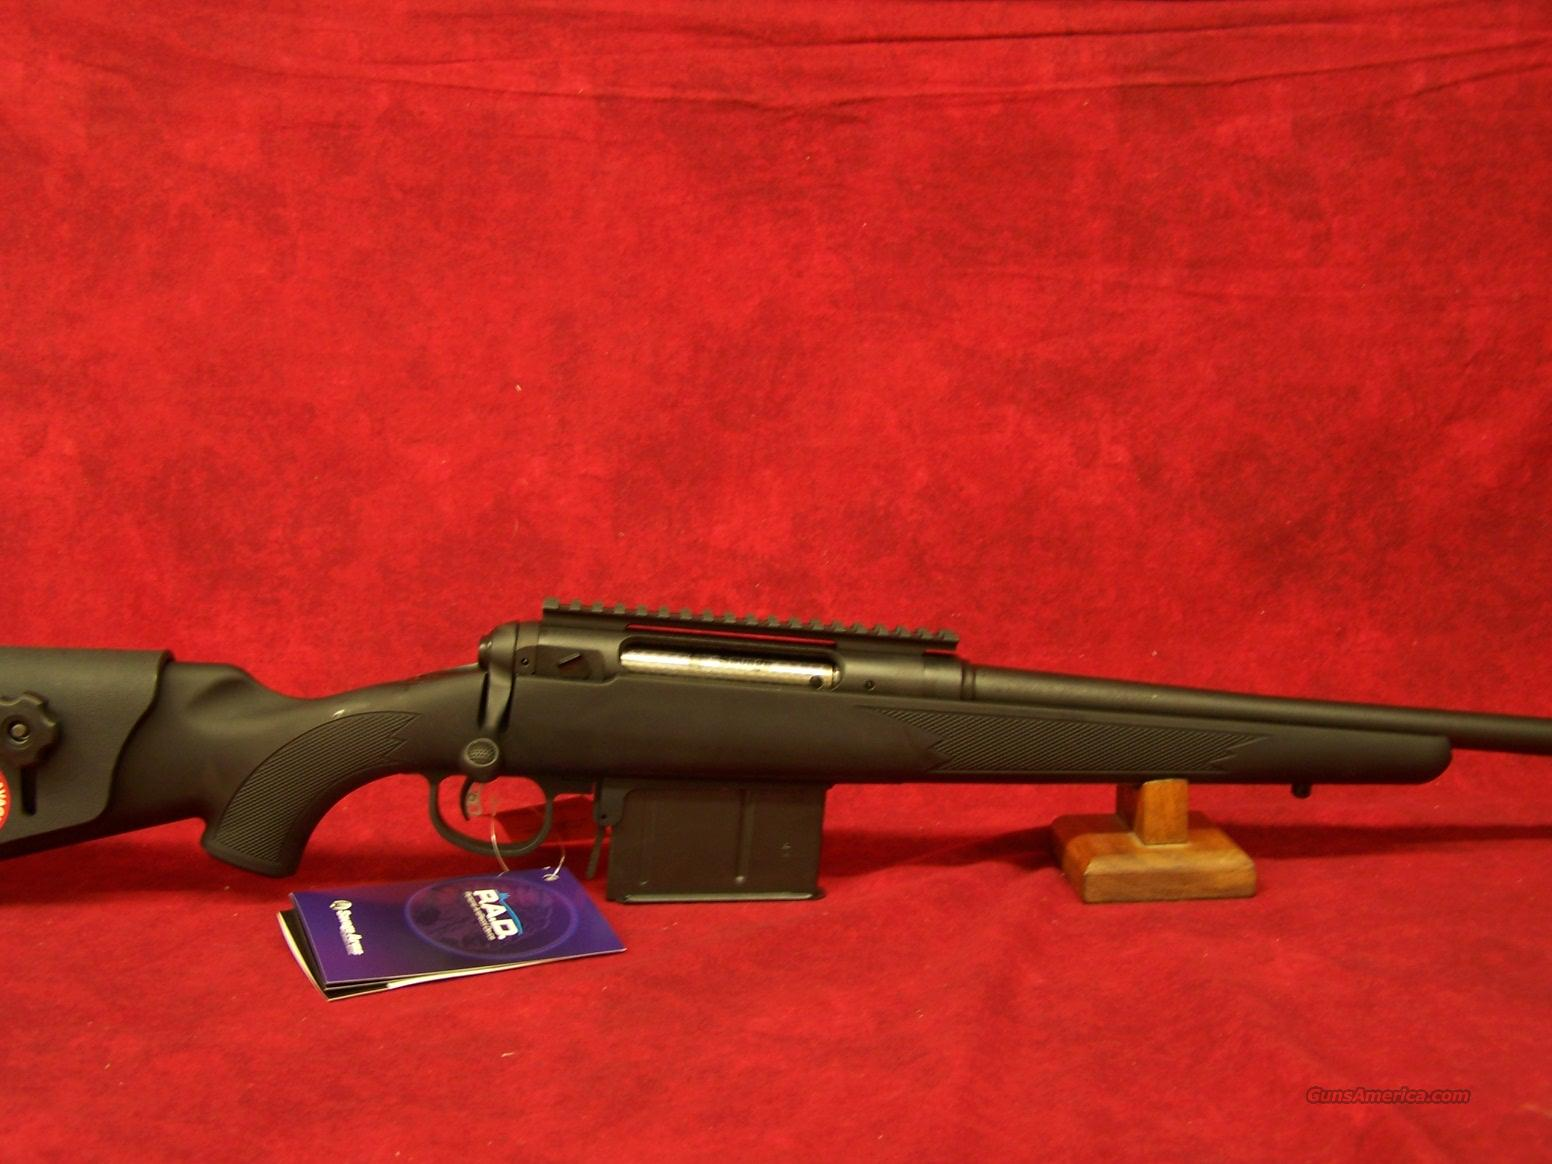 Savage 111 Long Range Hunter .338 Lapua Mag (19482)  Guns > Rifles > Savage Rifles > Accutrigger Models > Sporting